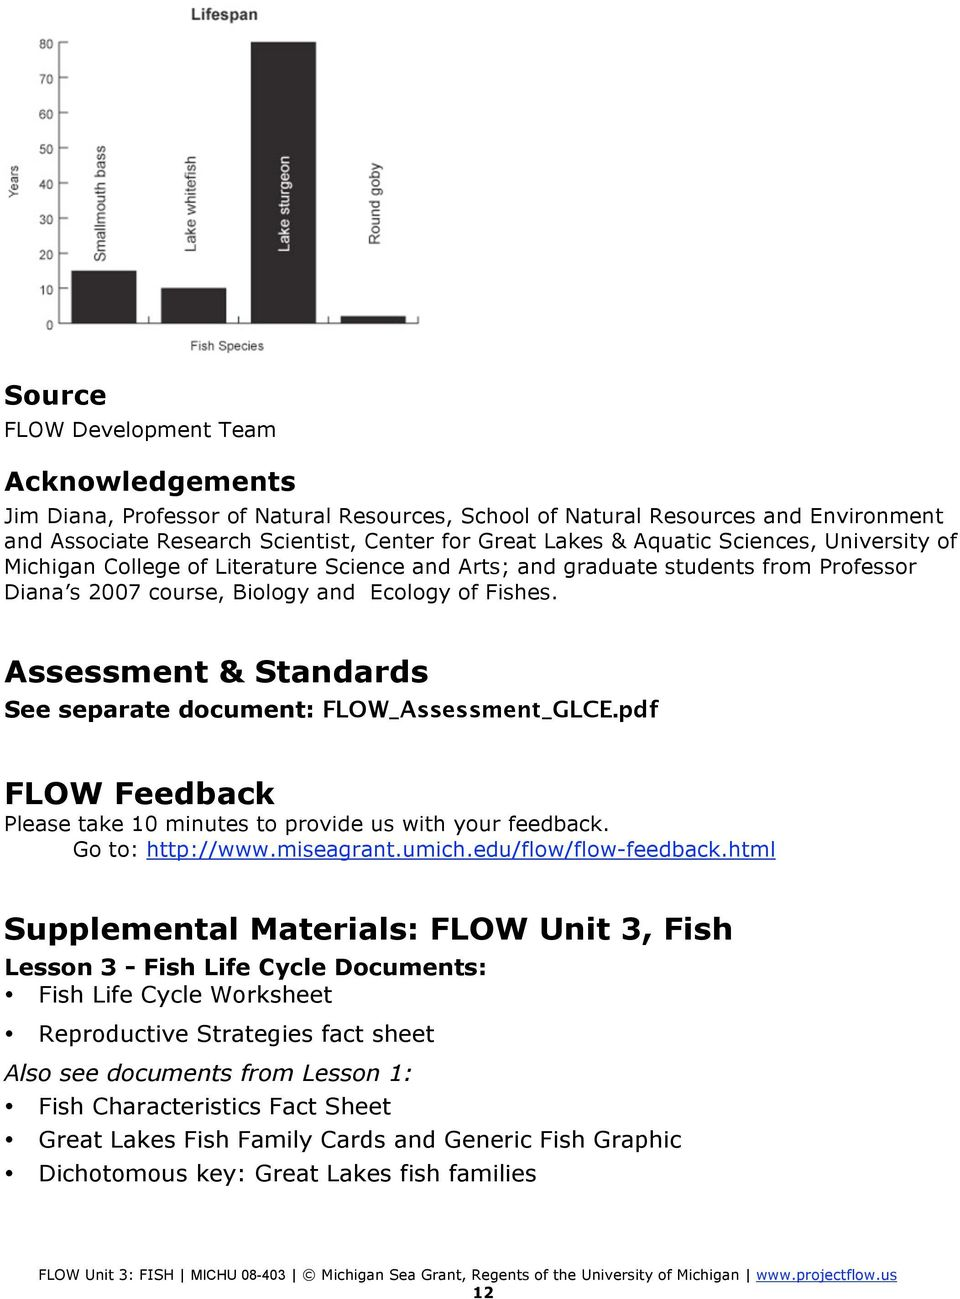 Assessment & Standards See separate document: FLOW_Assessment_GLCE.pdf FLOW Feedback Please take 10 minutes to provide us with your feedback. Go to: http://www.miseagrant.umich.edu/flow/flow-feedback.